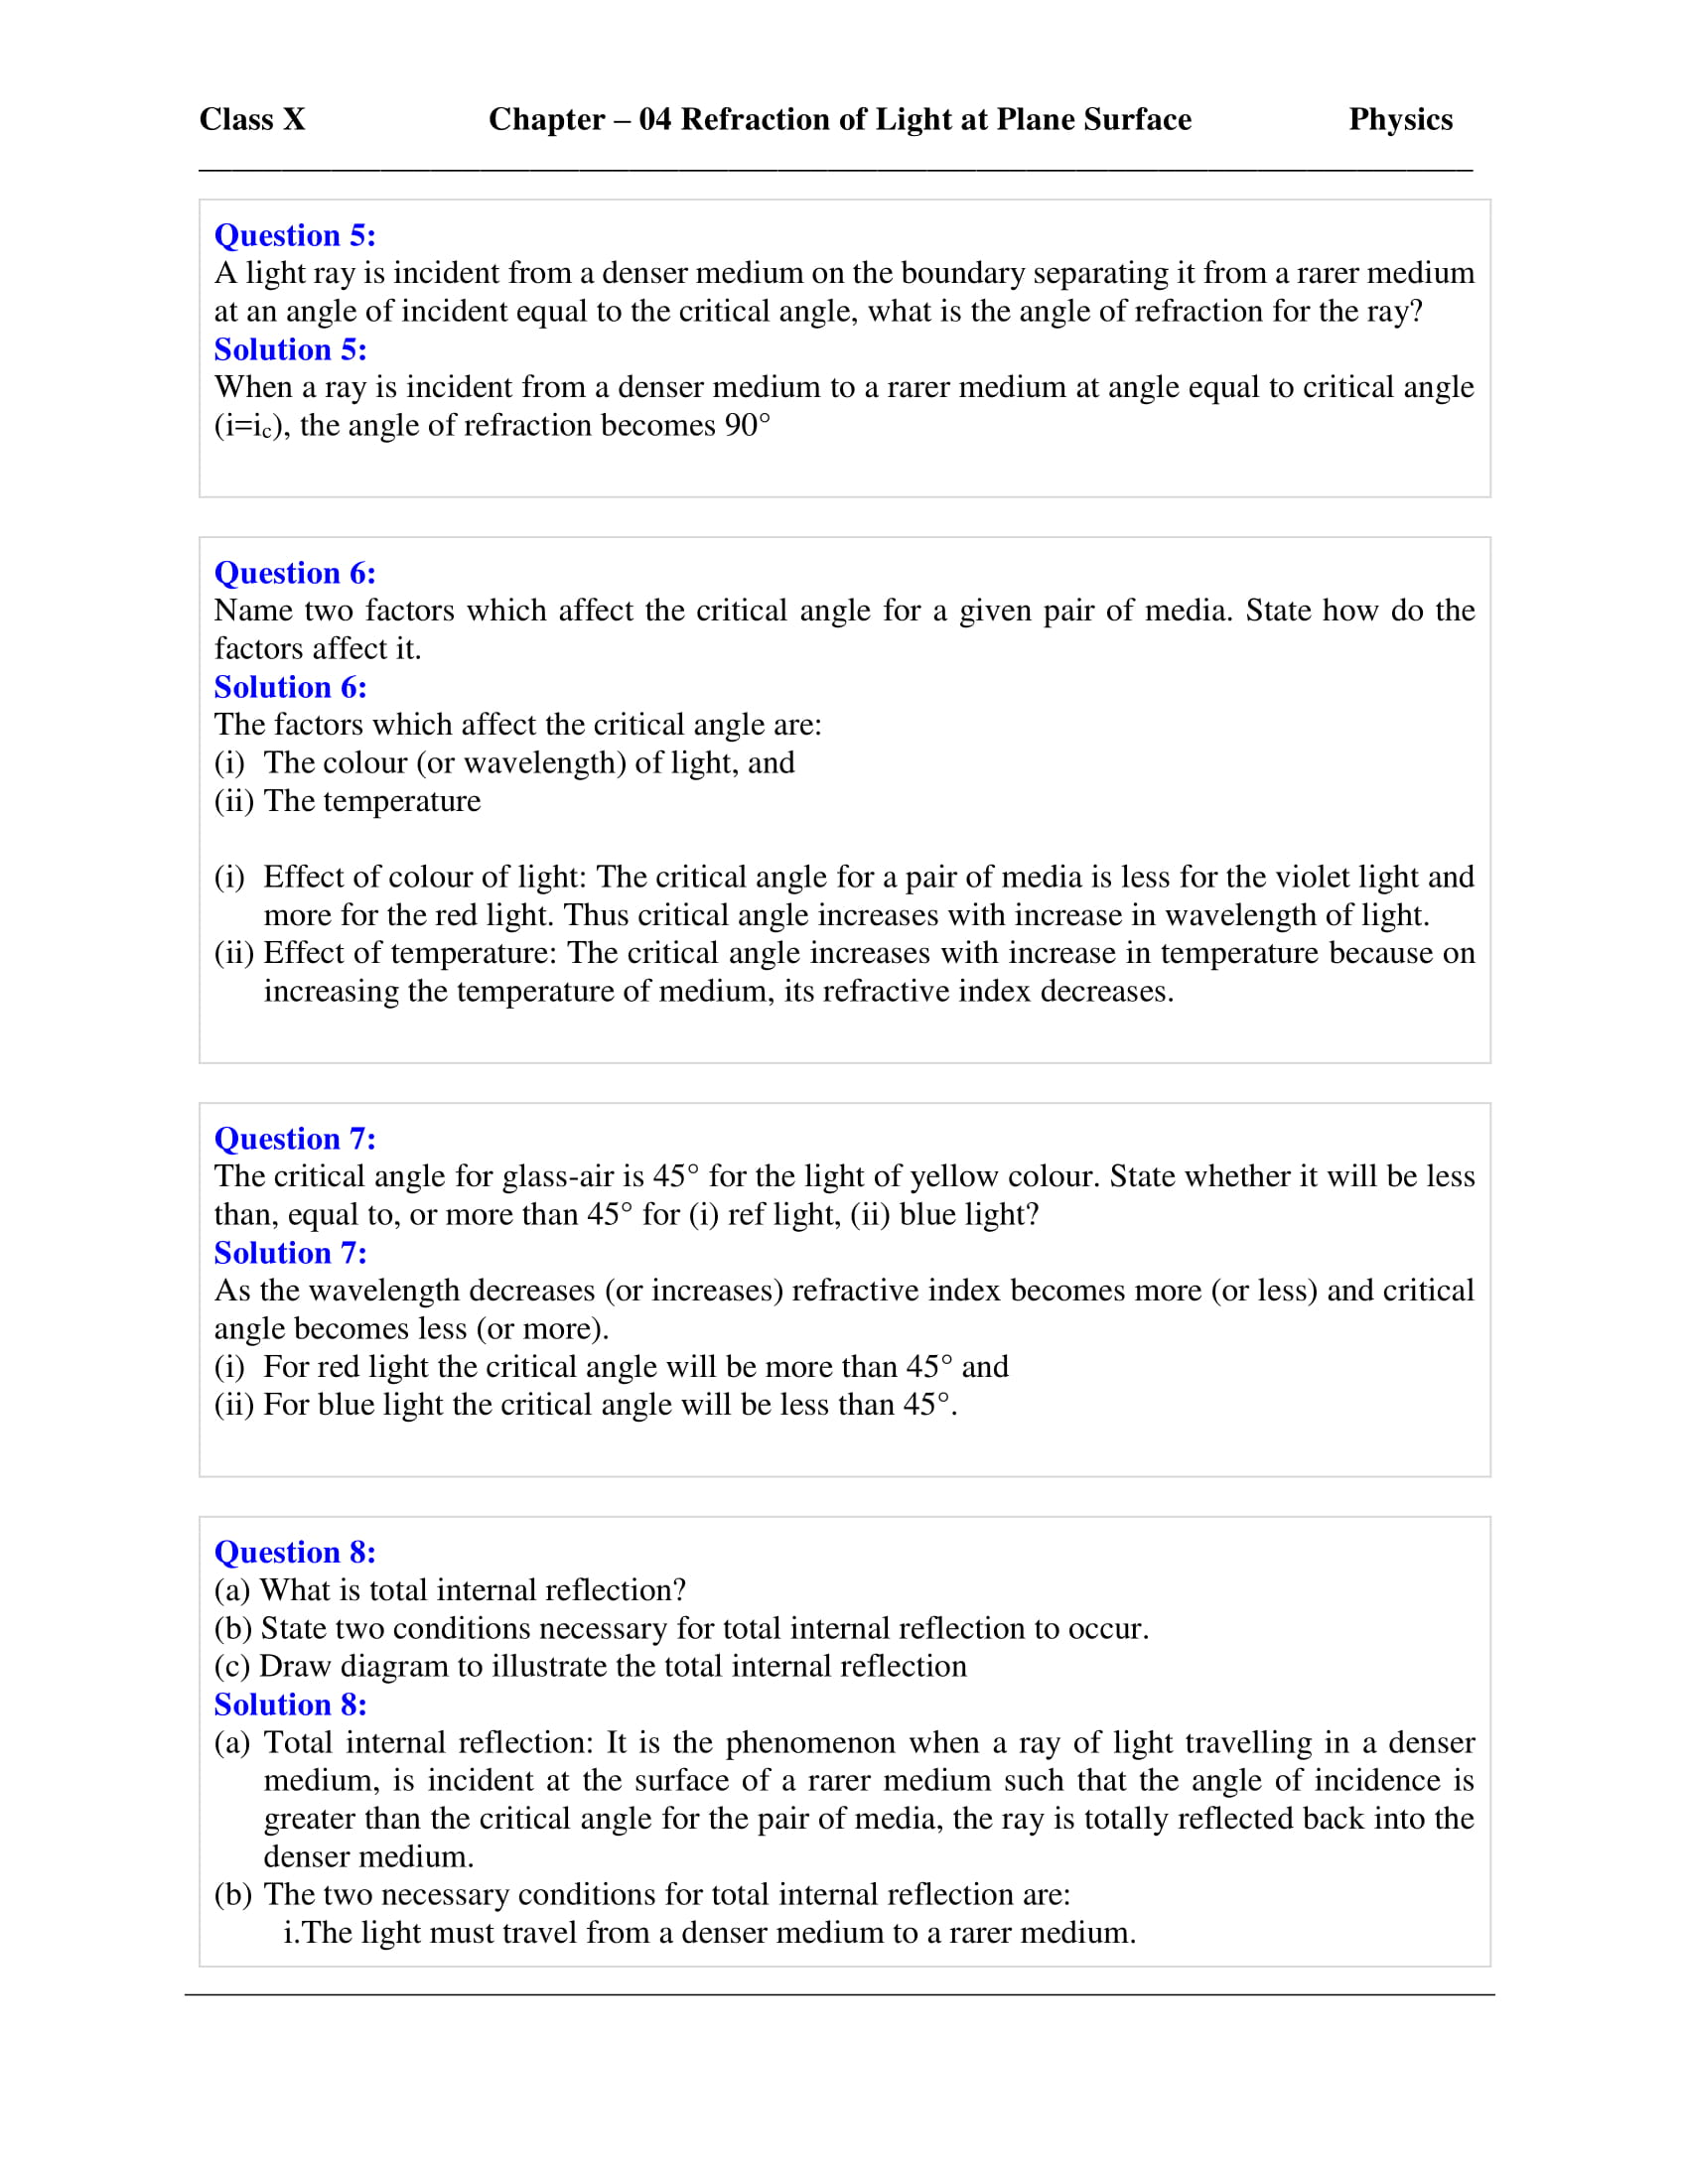 icse-selina-physics-solutions-class-10-chapter-4-refraction-of-light-at-plane-surfaces-29